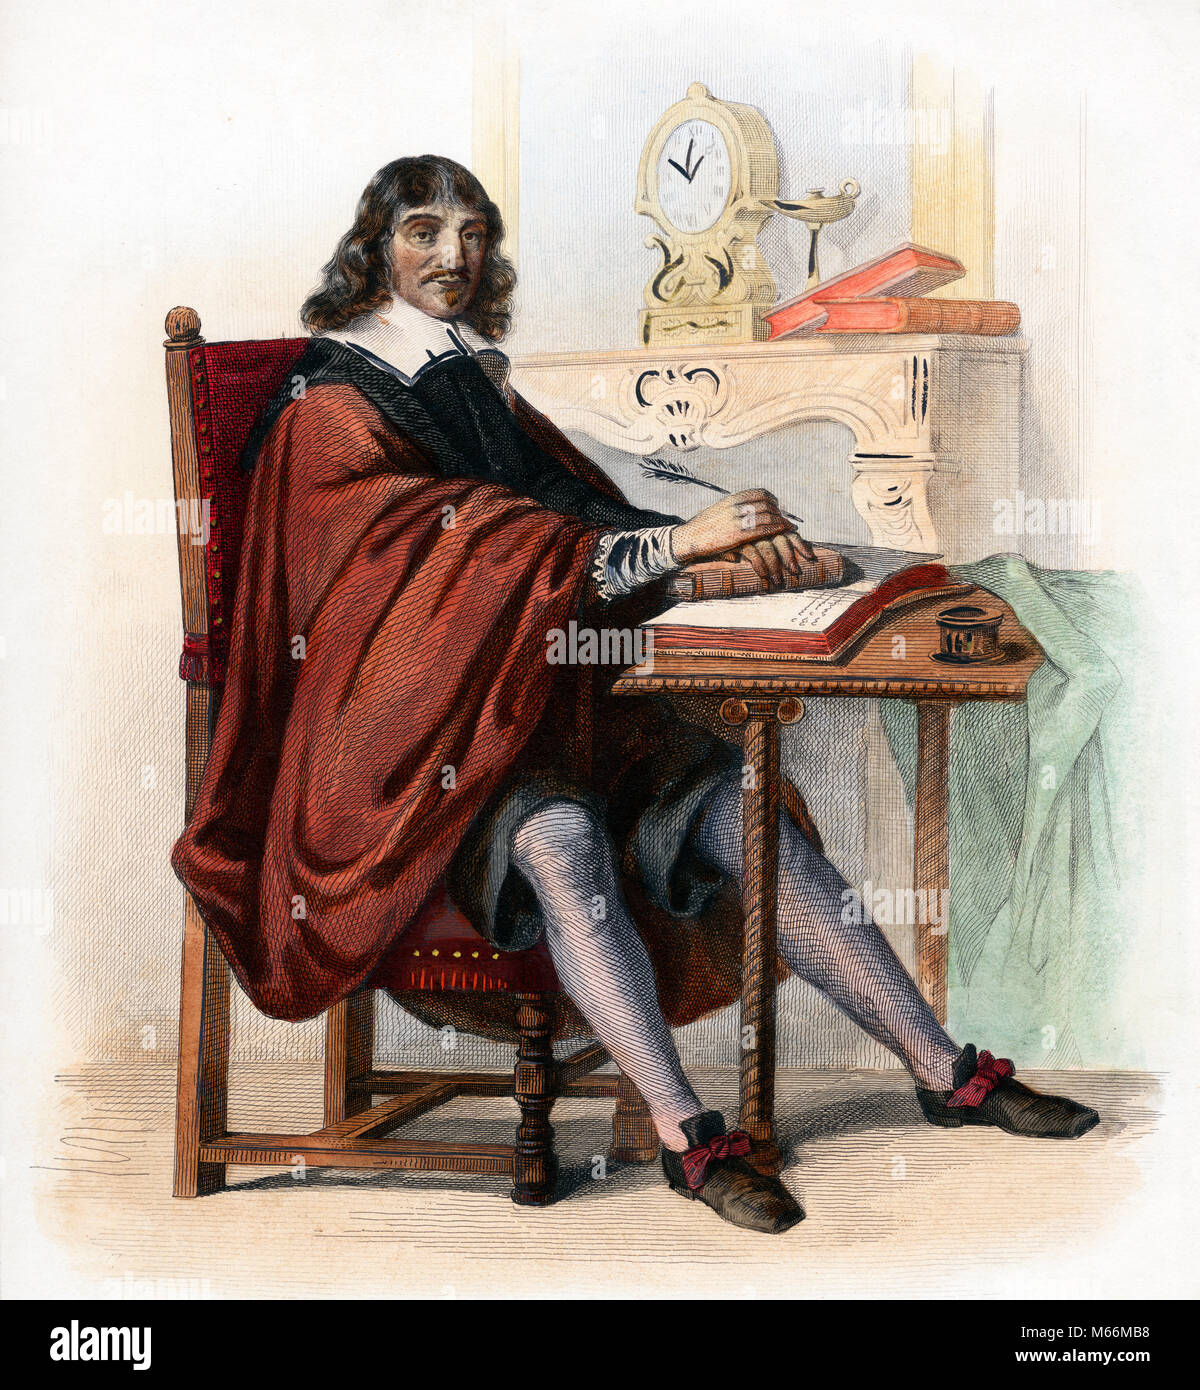 1500s 1600s PORTRAIT OF RENE DESCARTES FRENCH PHILOSPHER BY C. JAQUAND - kh13259 CPC001 HARS KNOWLEDGE INNOVATION Stock Photo